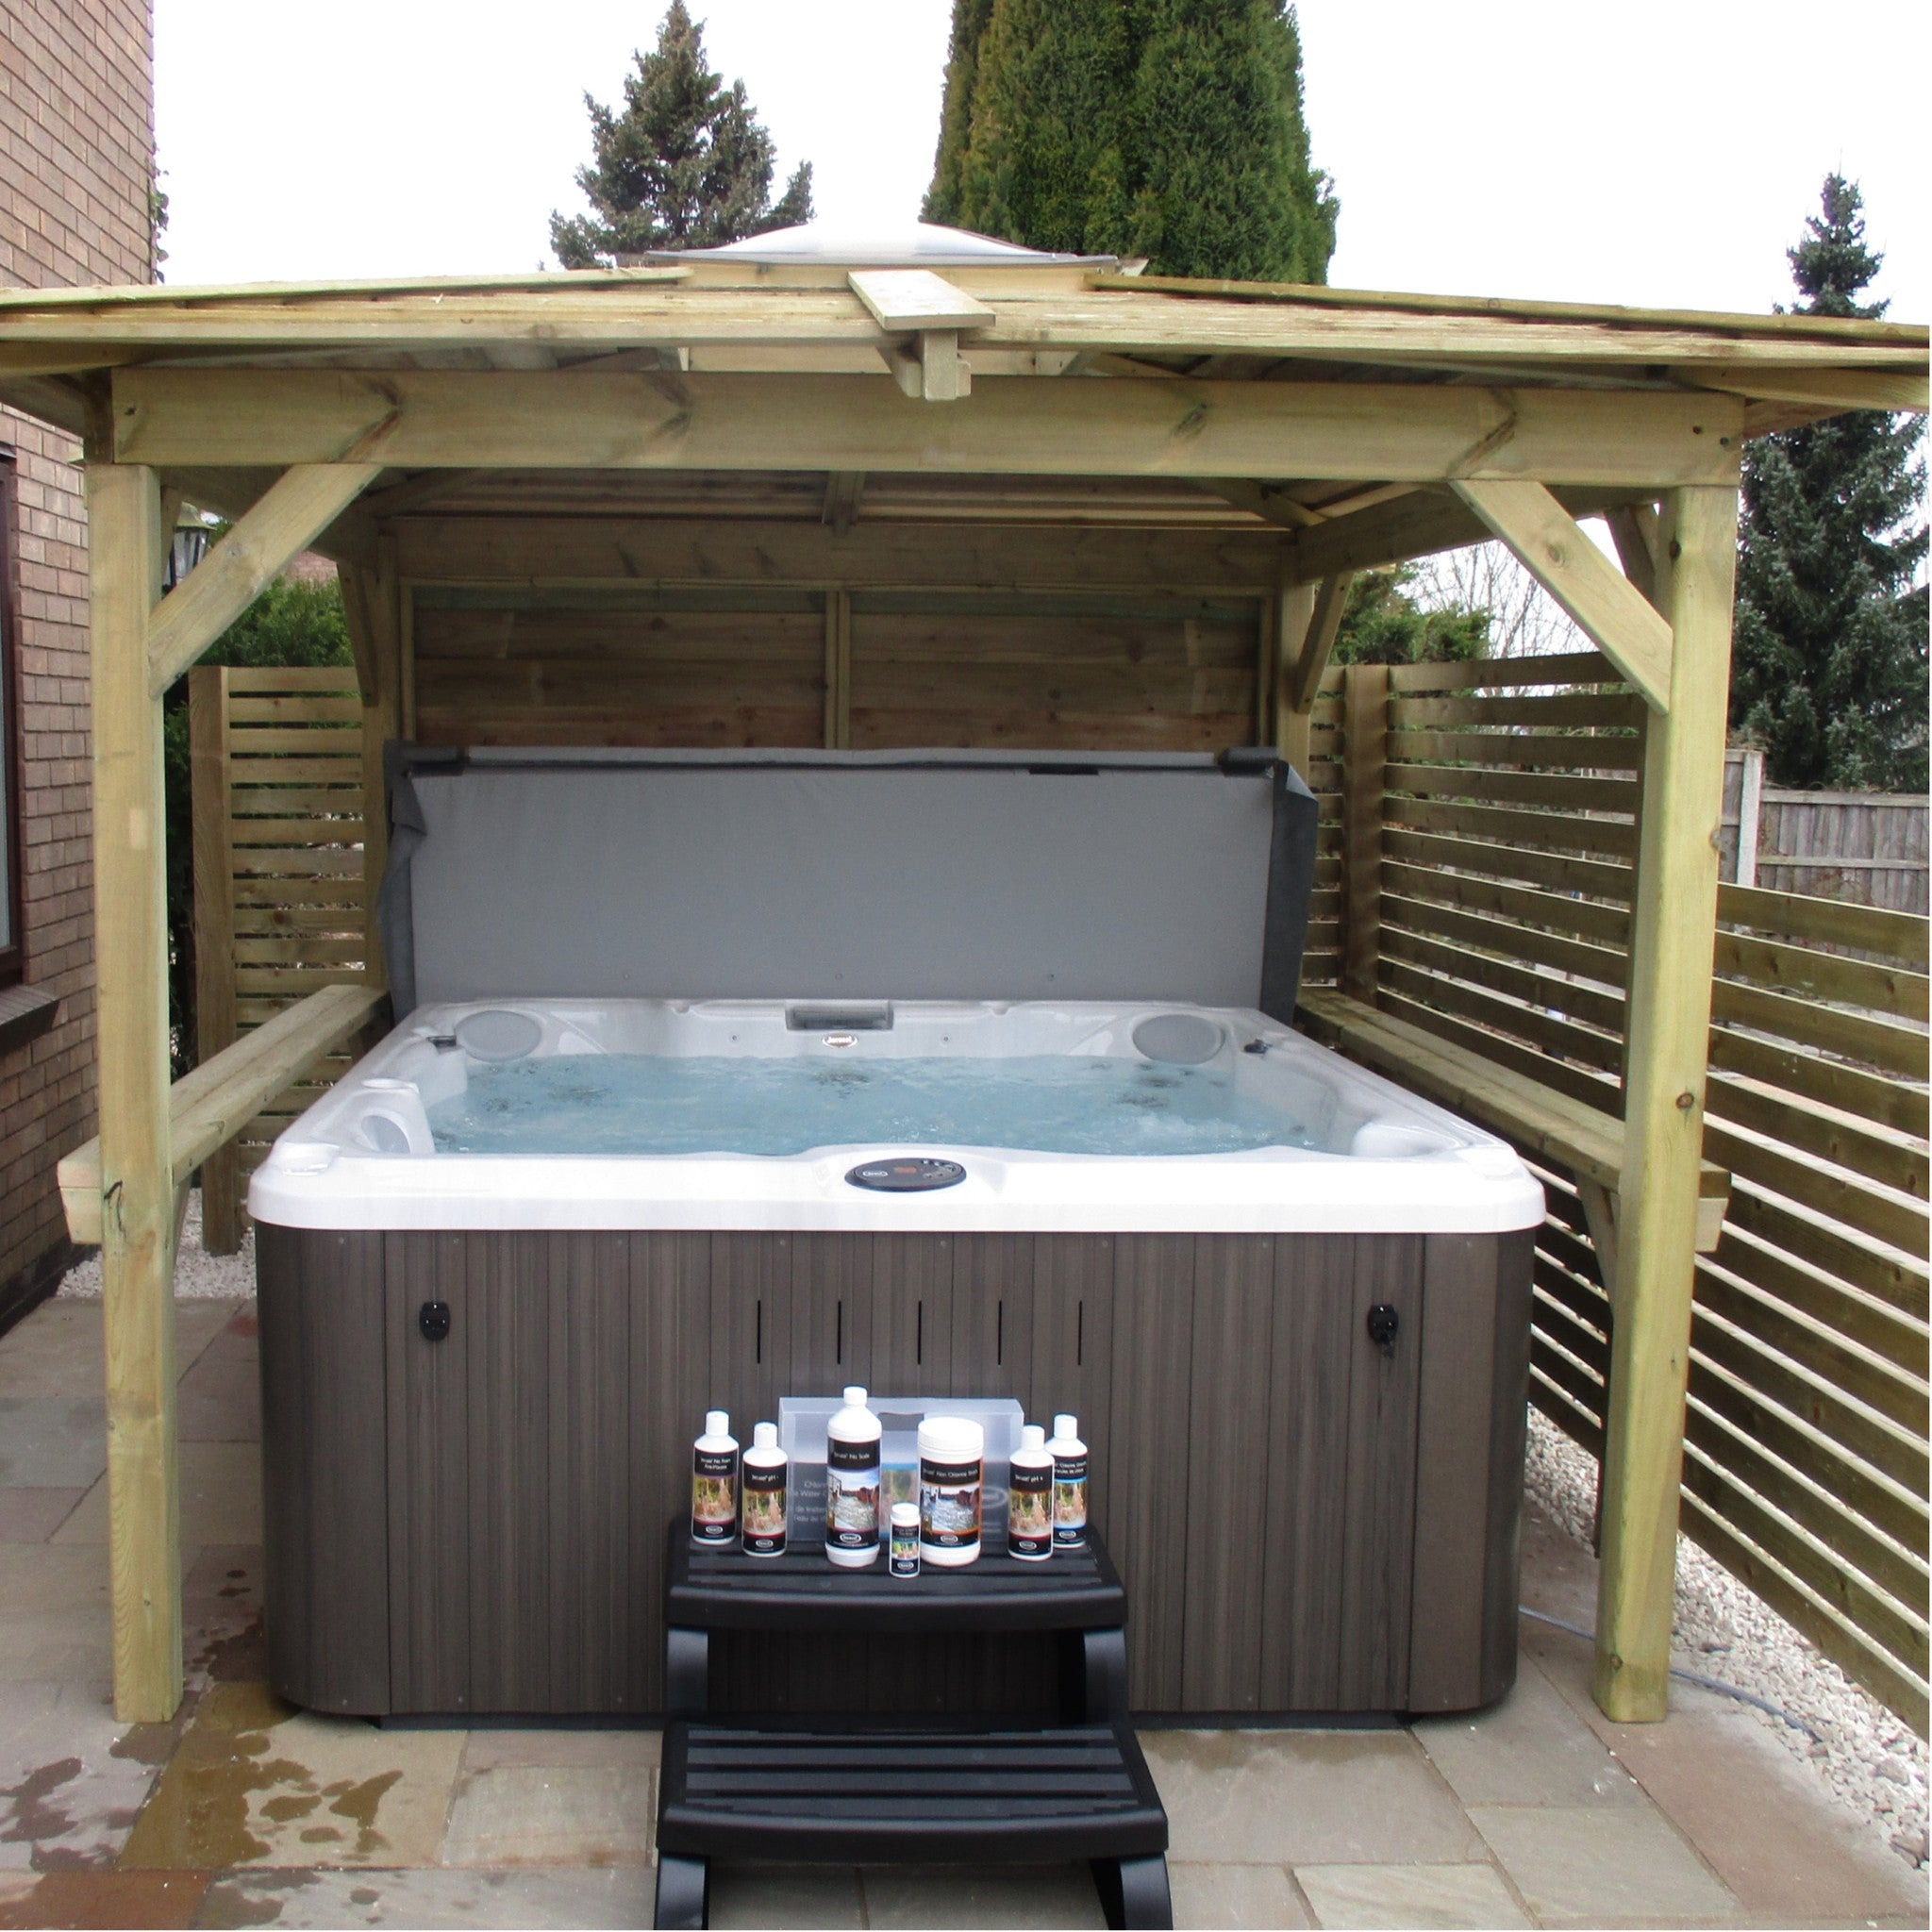 Jacuzzi J235 Hot Tub With Gazebo Outdoor Living